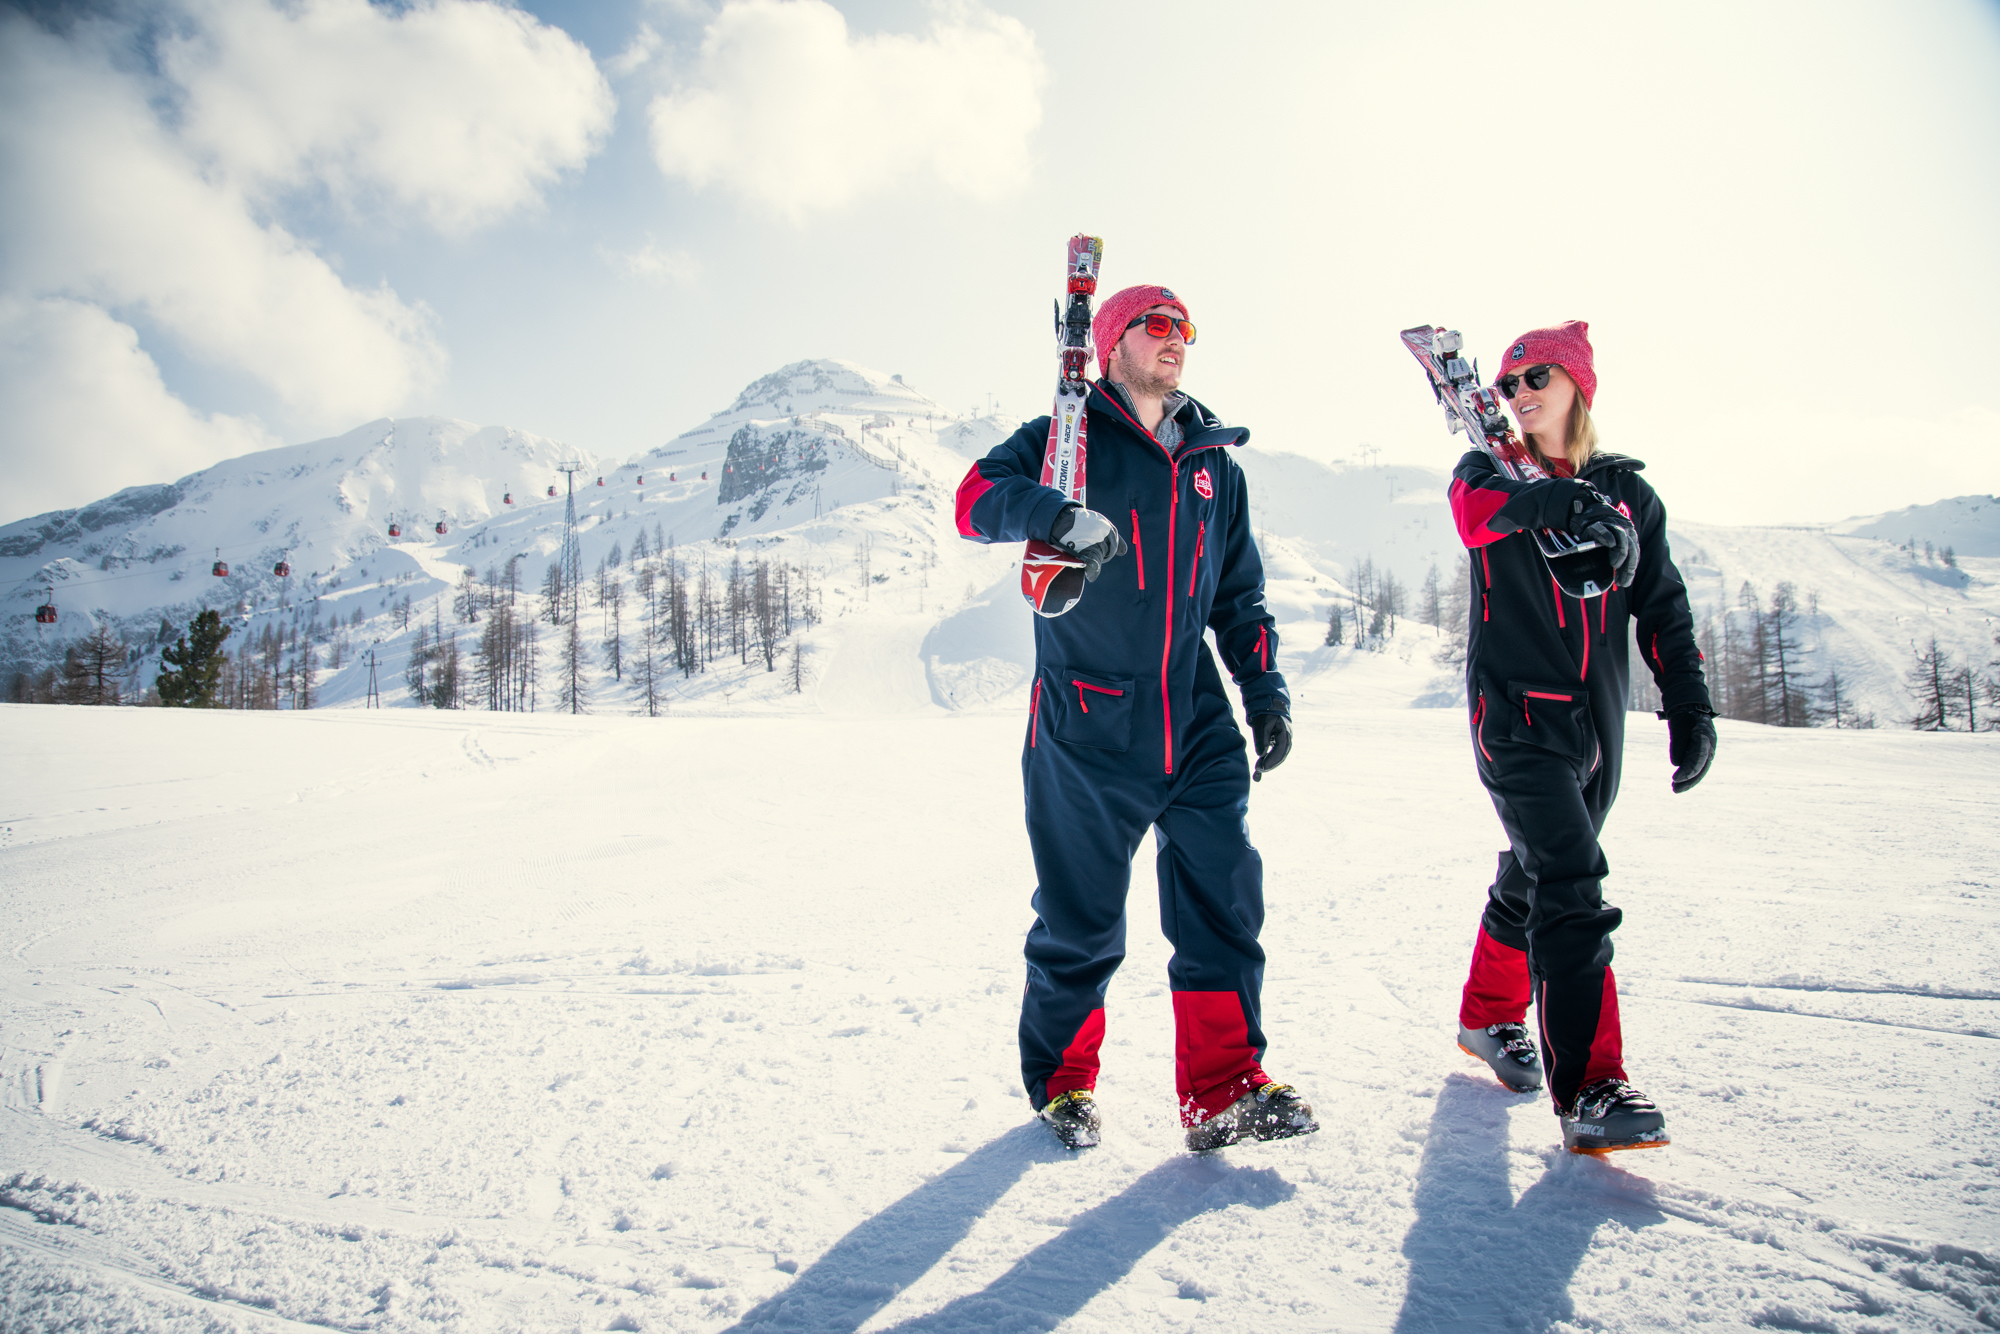 Help Red7 bring the CG1 ski suit to market